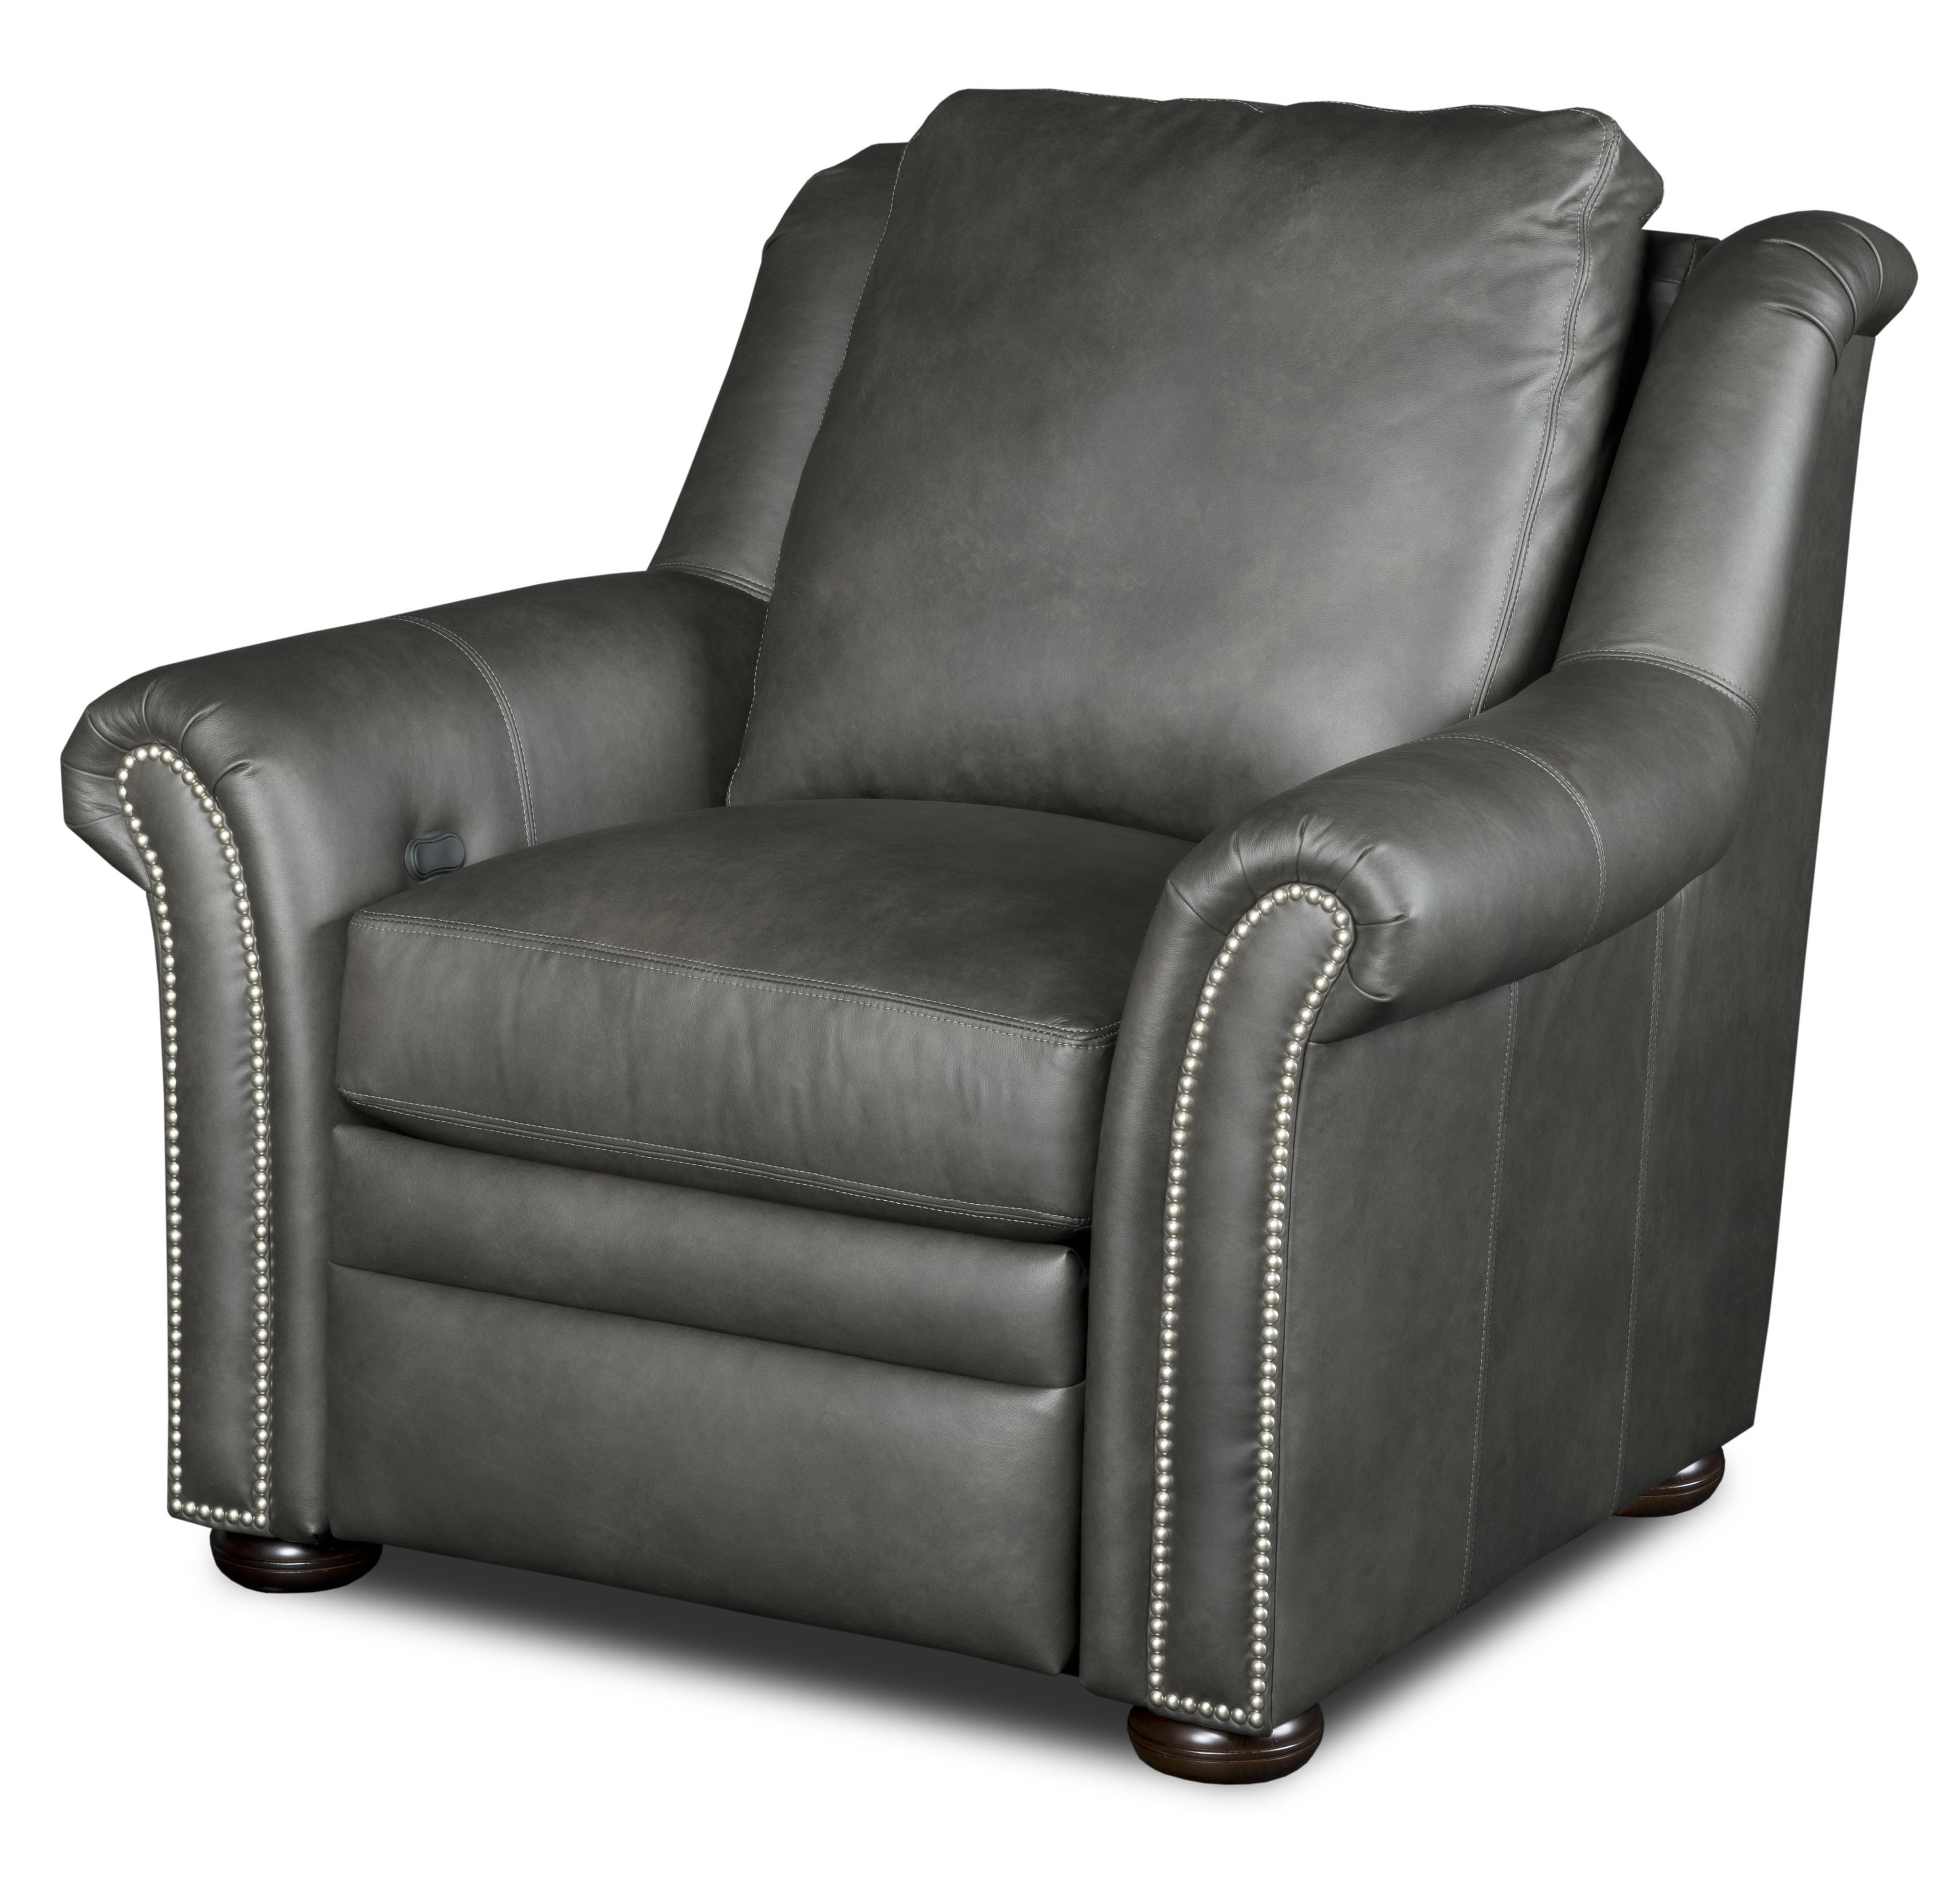 Bradington Young Newman Transitional Power Reclining Chair With Nailheads Lindy S Furniture Company High Leg Recliners